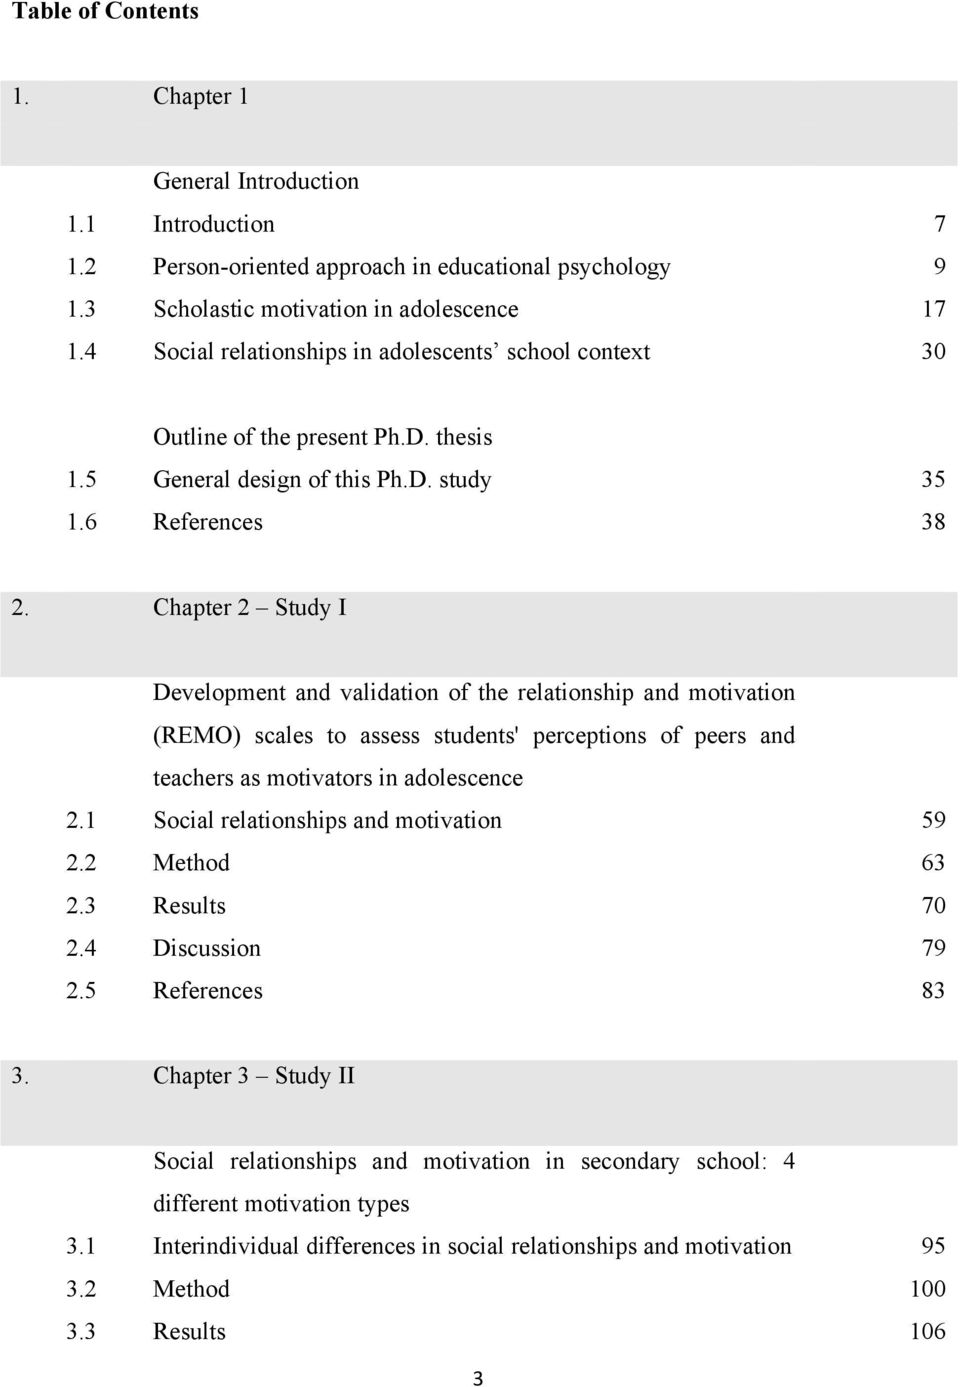 Chapter 2 Study I Development and validation of the relationship and motivation (REMO) scales to assess students' perceptions of peers and teachers as motivators in adolescence 2.